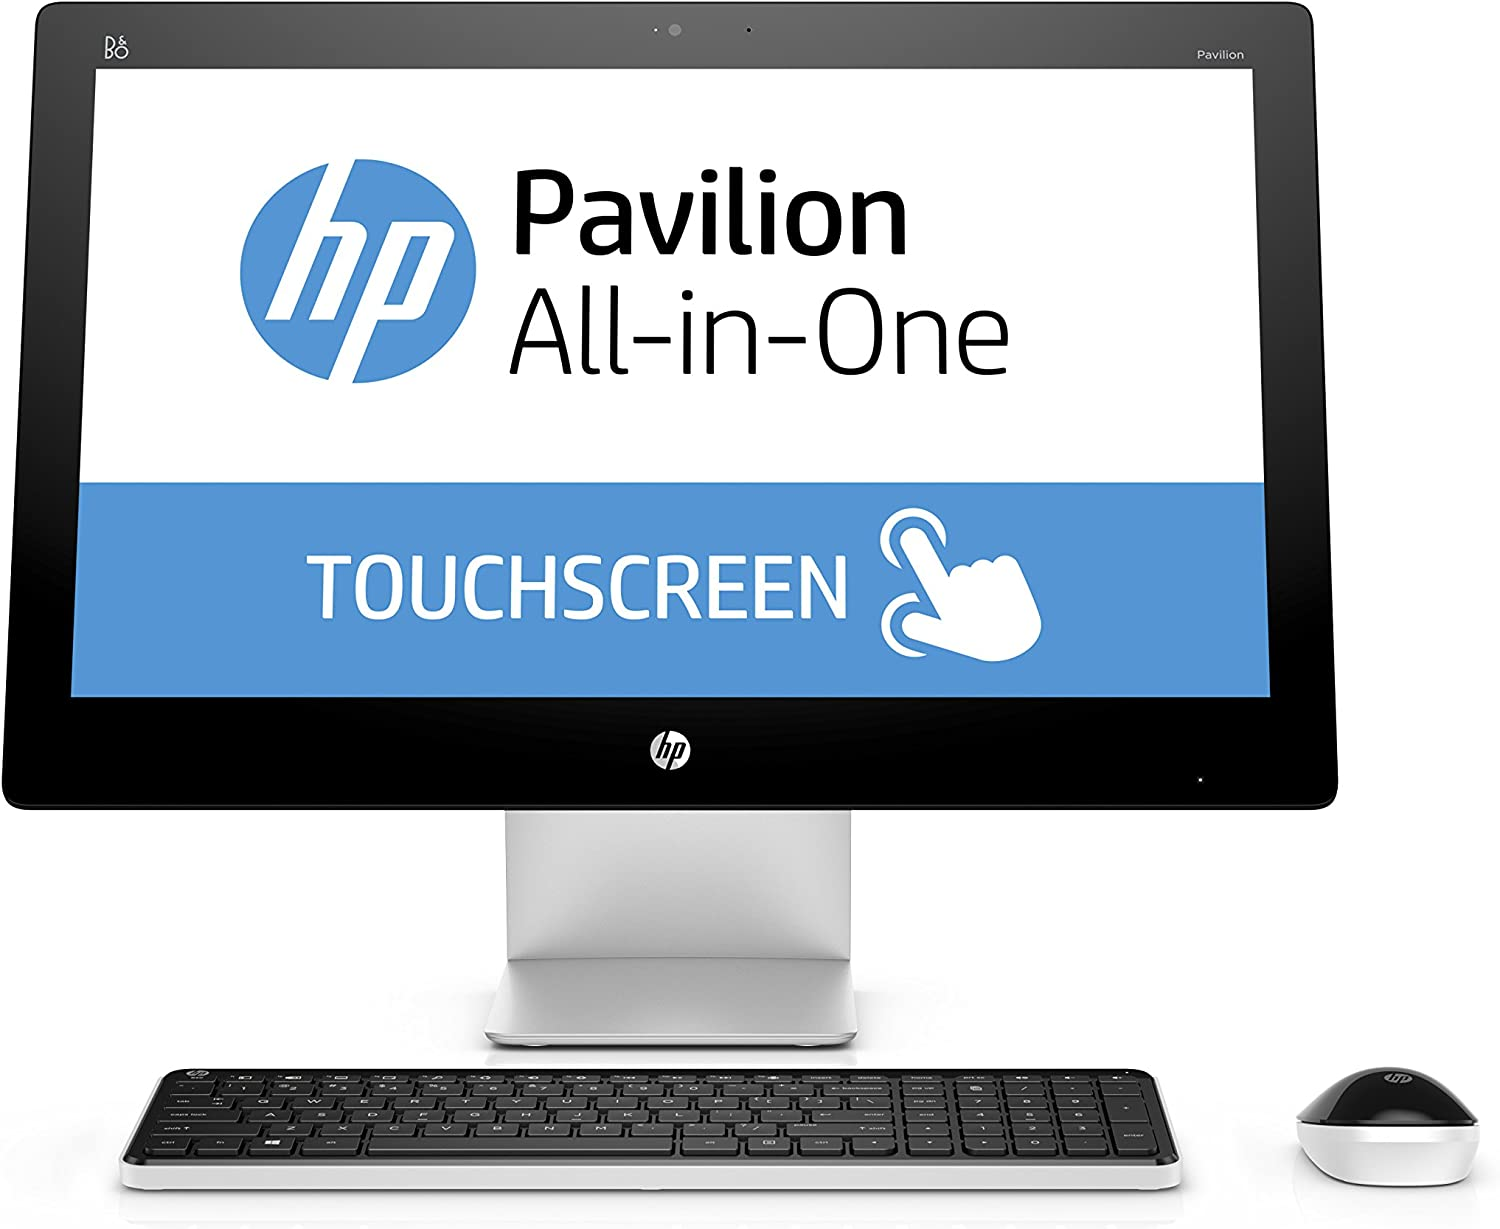 HP Pavilion 23-q120 23-Inch All-in-One Desktop (Intel Core i3, 4 GB RAM, 1 TB HDD)